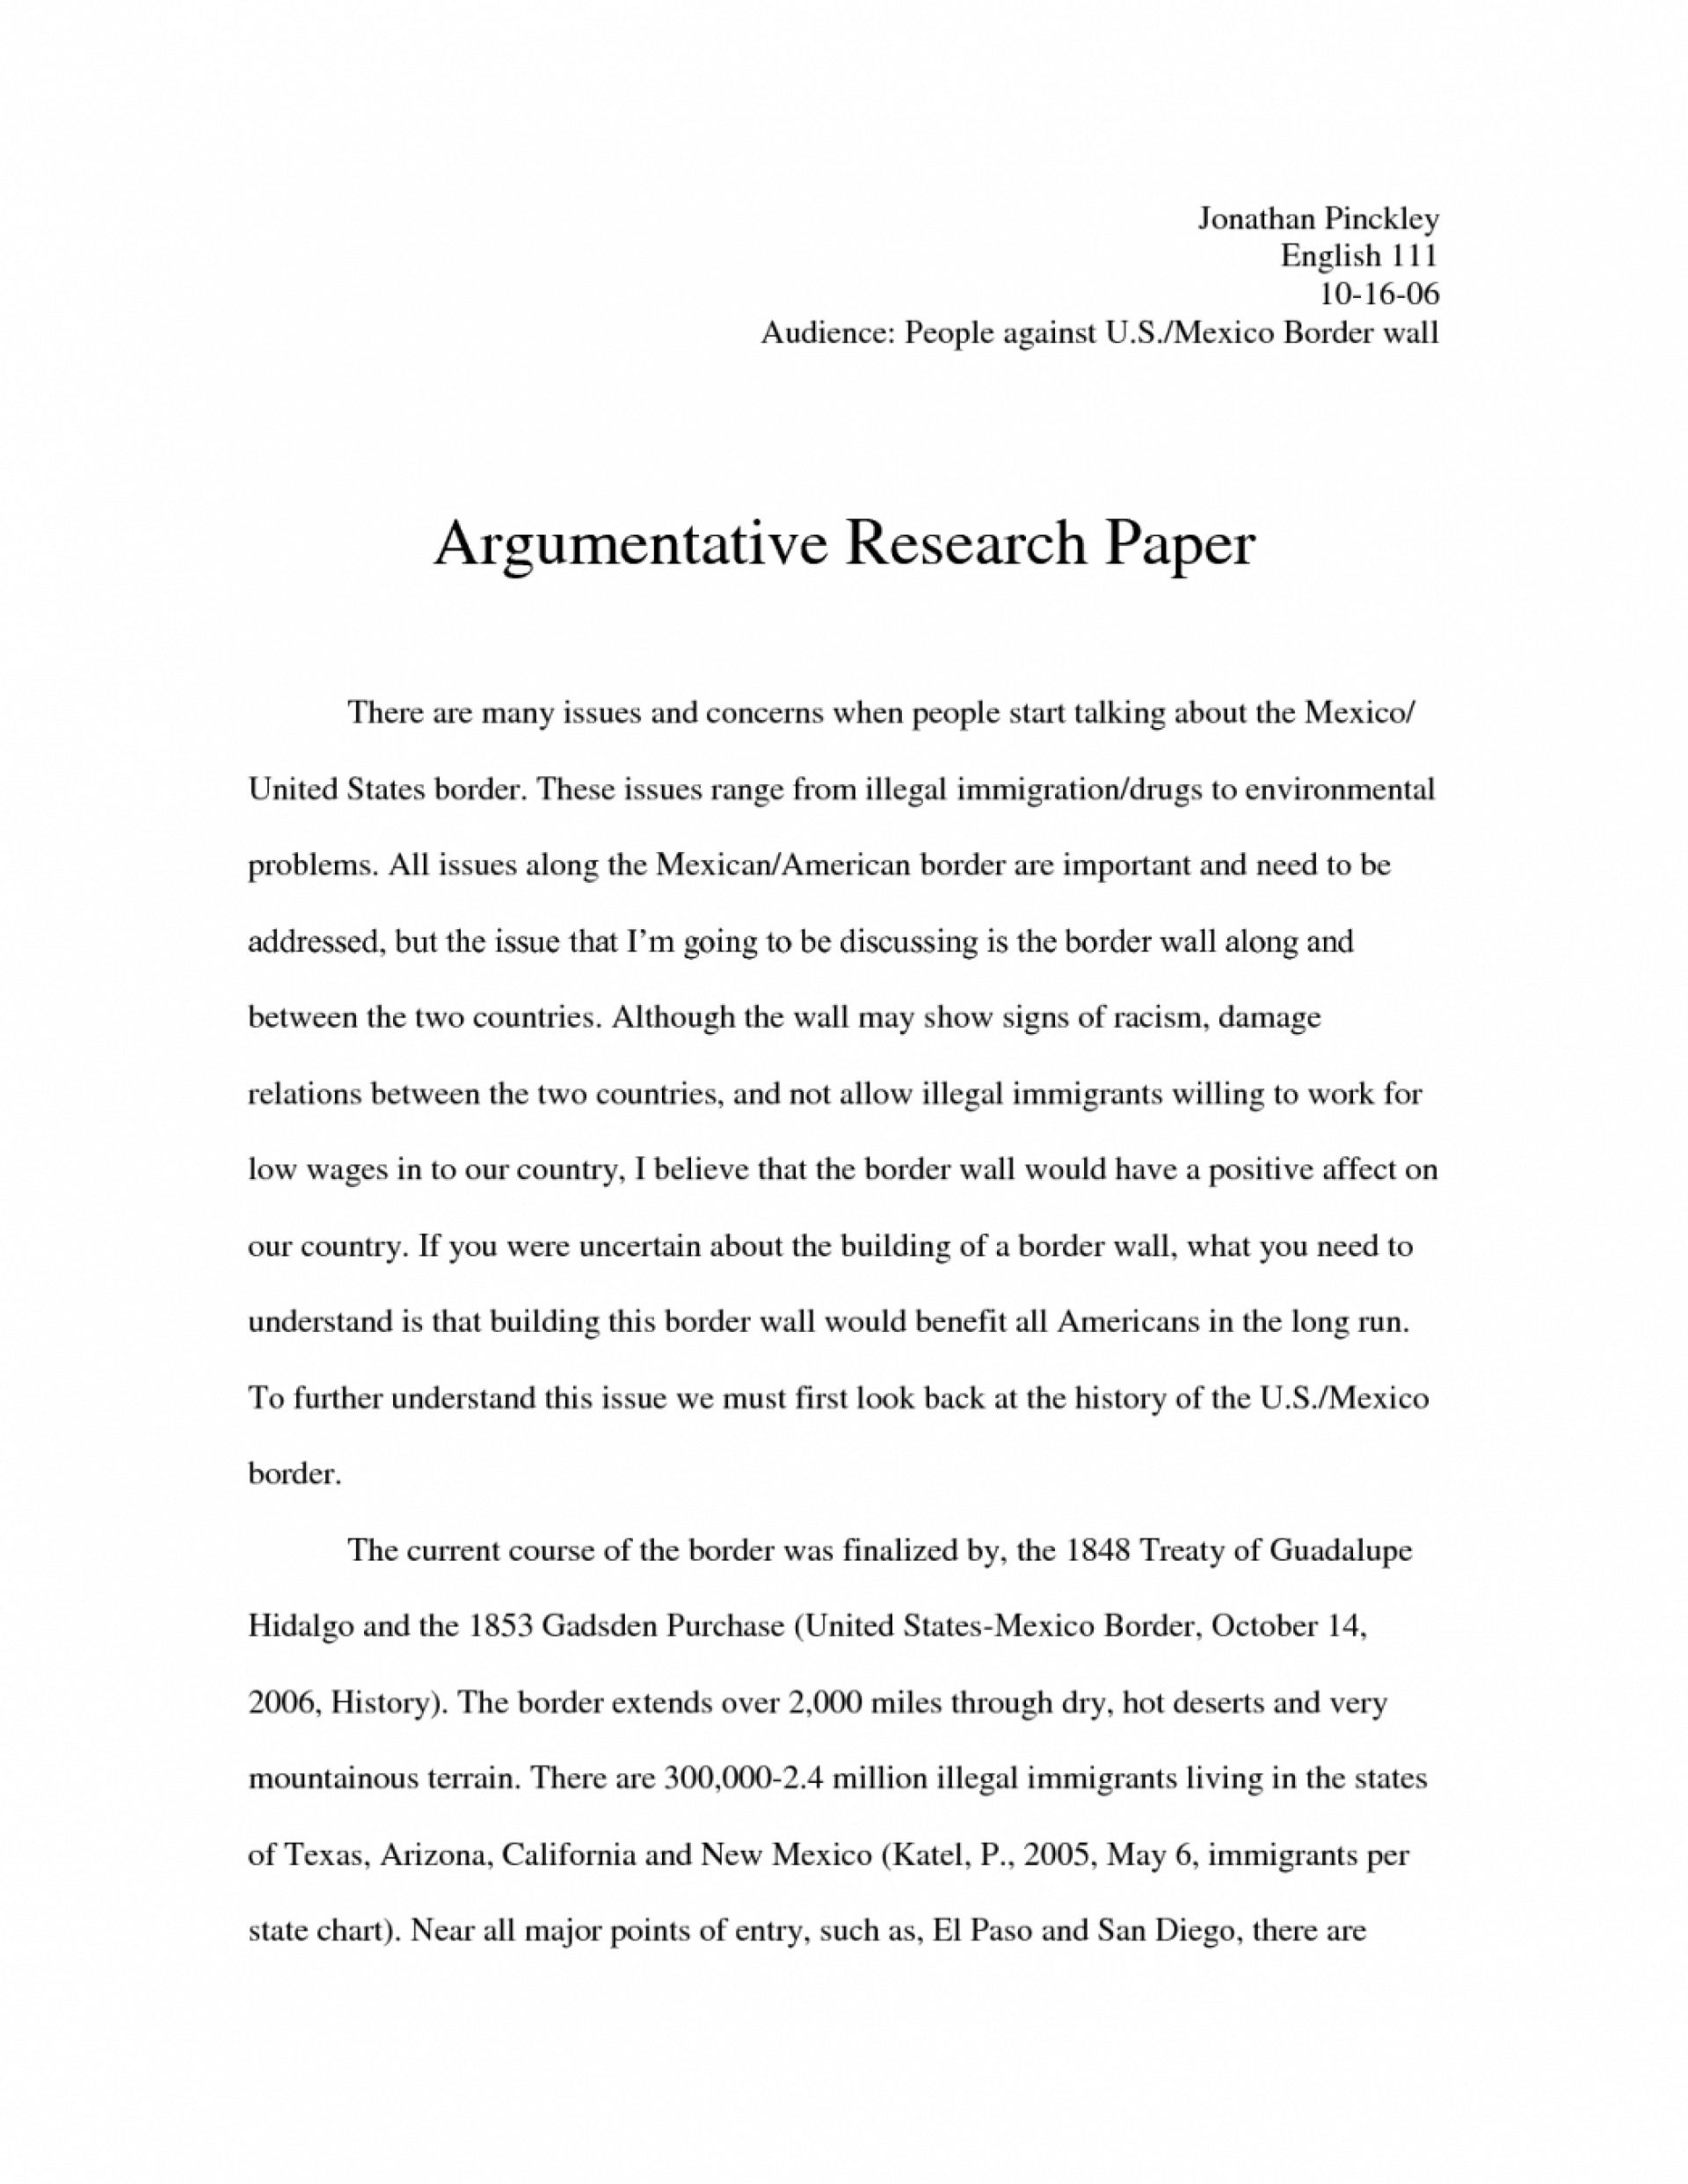 003 Argumentative Essay On Illegal Immigration Argument Research Persuasive Why Is Good Pgune Reform In America Topics Control Pro Thesis Rights 1048x1356 Wonderful Laws 1920